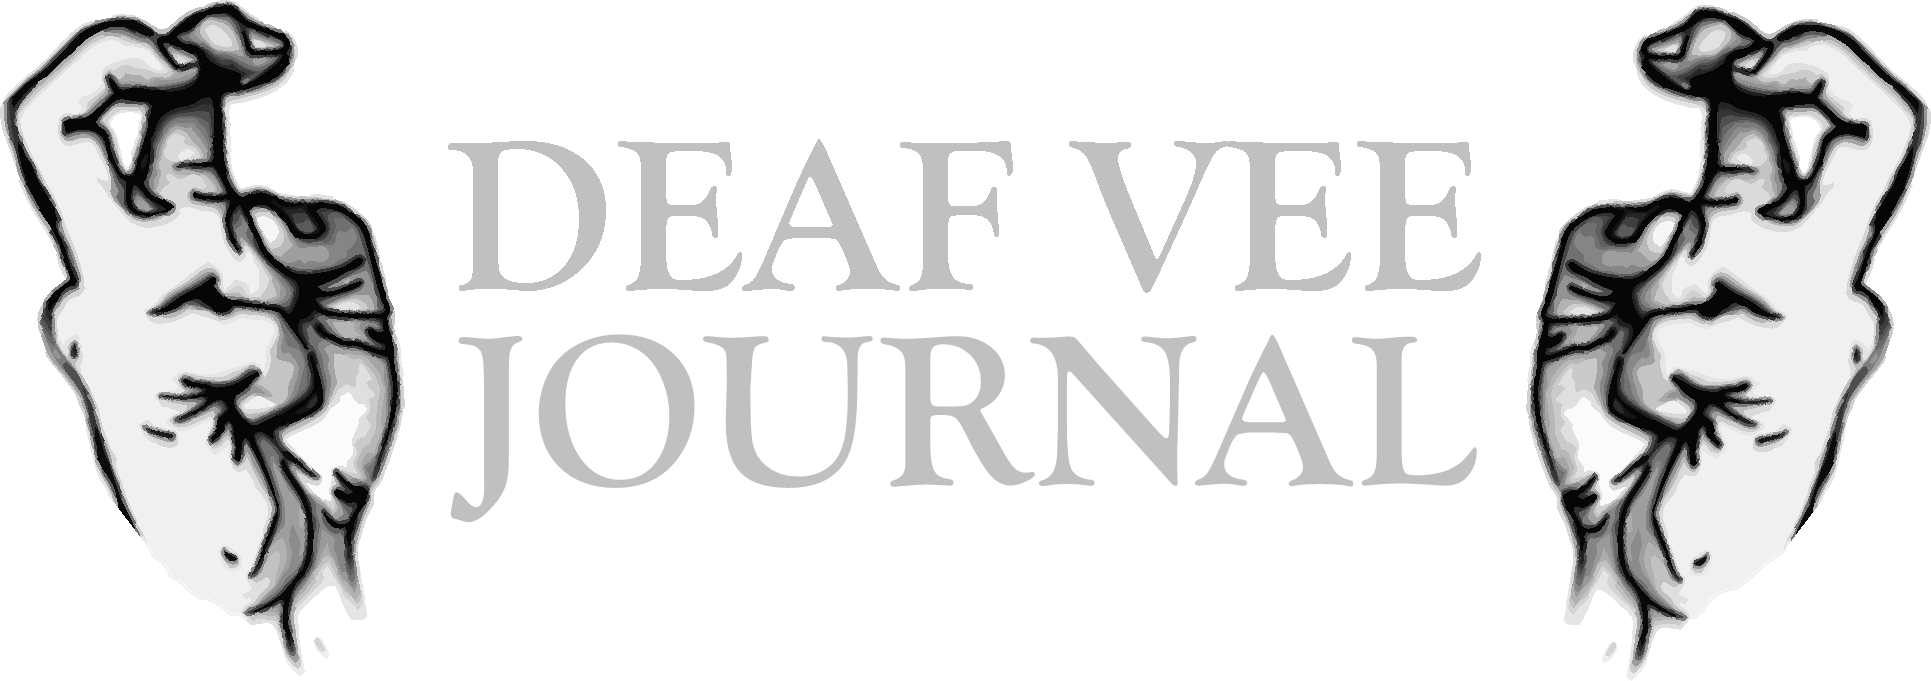 Deaf Vee Journal